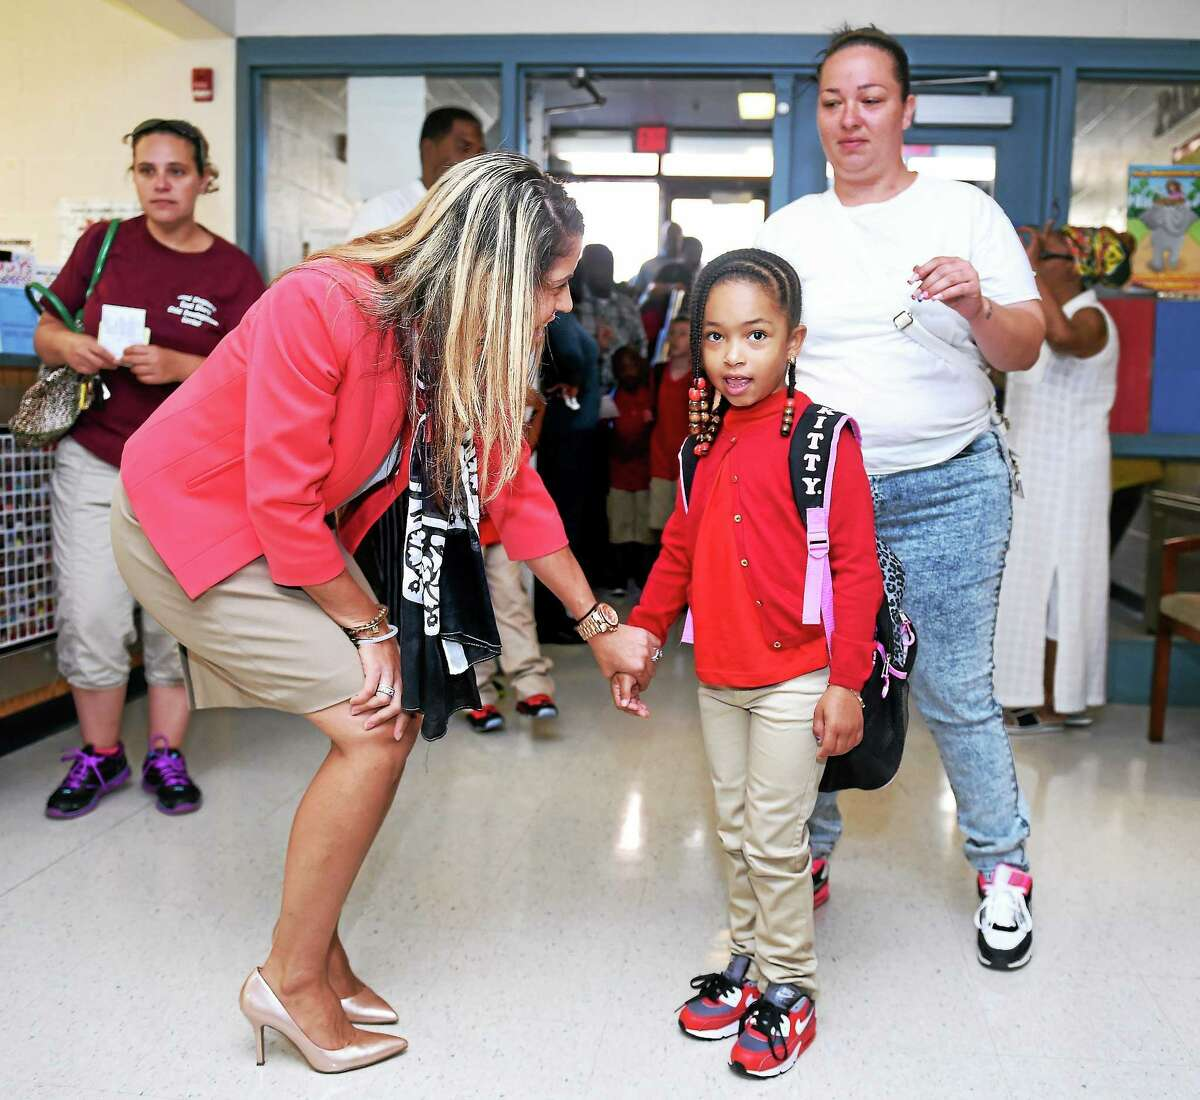 (Arnold Gold-New Haven Register) New principal Sandy Kaliszewski greets first grader Keyonna Duarte, 6, on the first day of school at Mauro-Sheridan Interdistrict Magnet School for Science, Technology & Communications in New Haven on 8/28/2014.